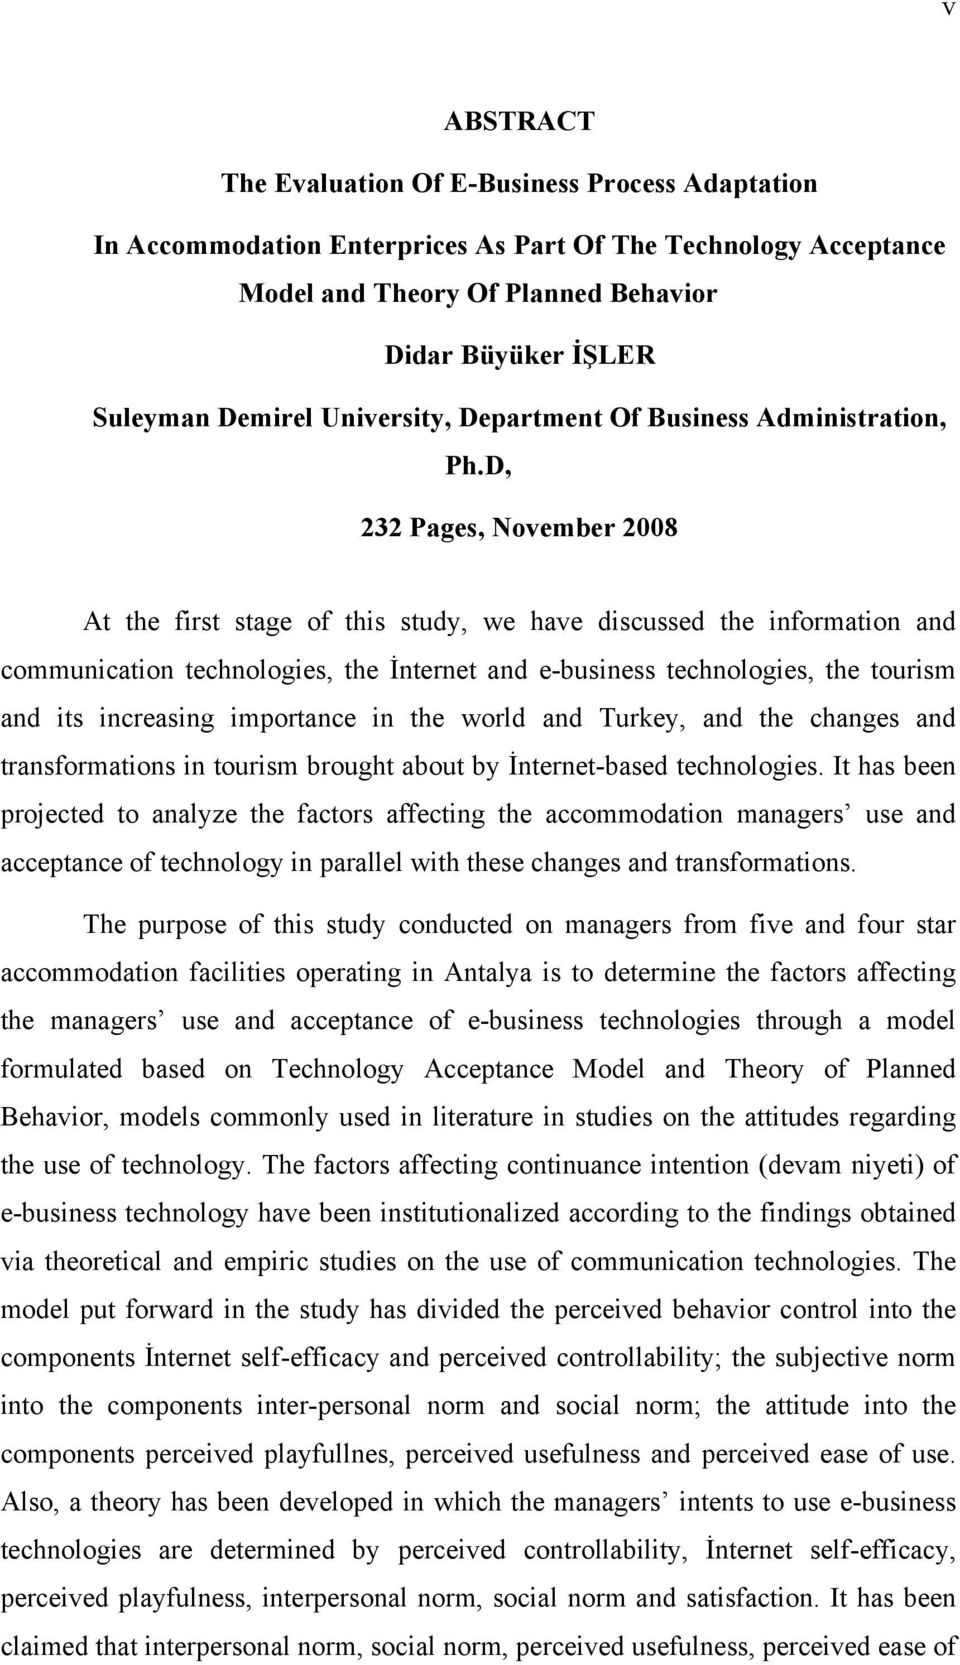 D, 232 Pages, November 2008 At the first stage of this study, we have discussed the information and communication technologies, the İnternet and e-business technologies, the tourism and its